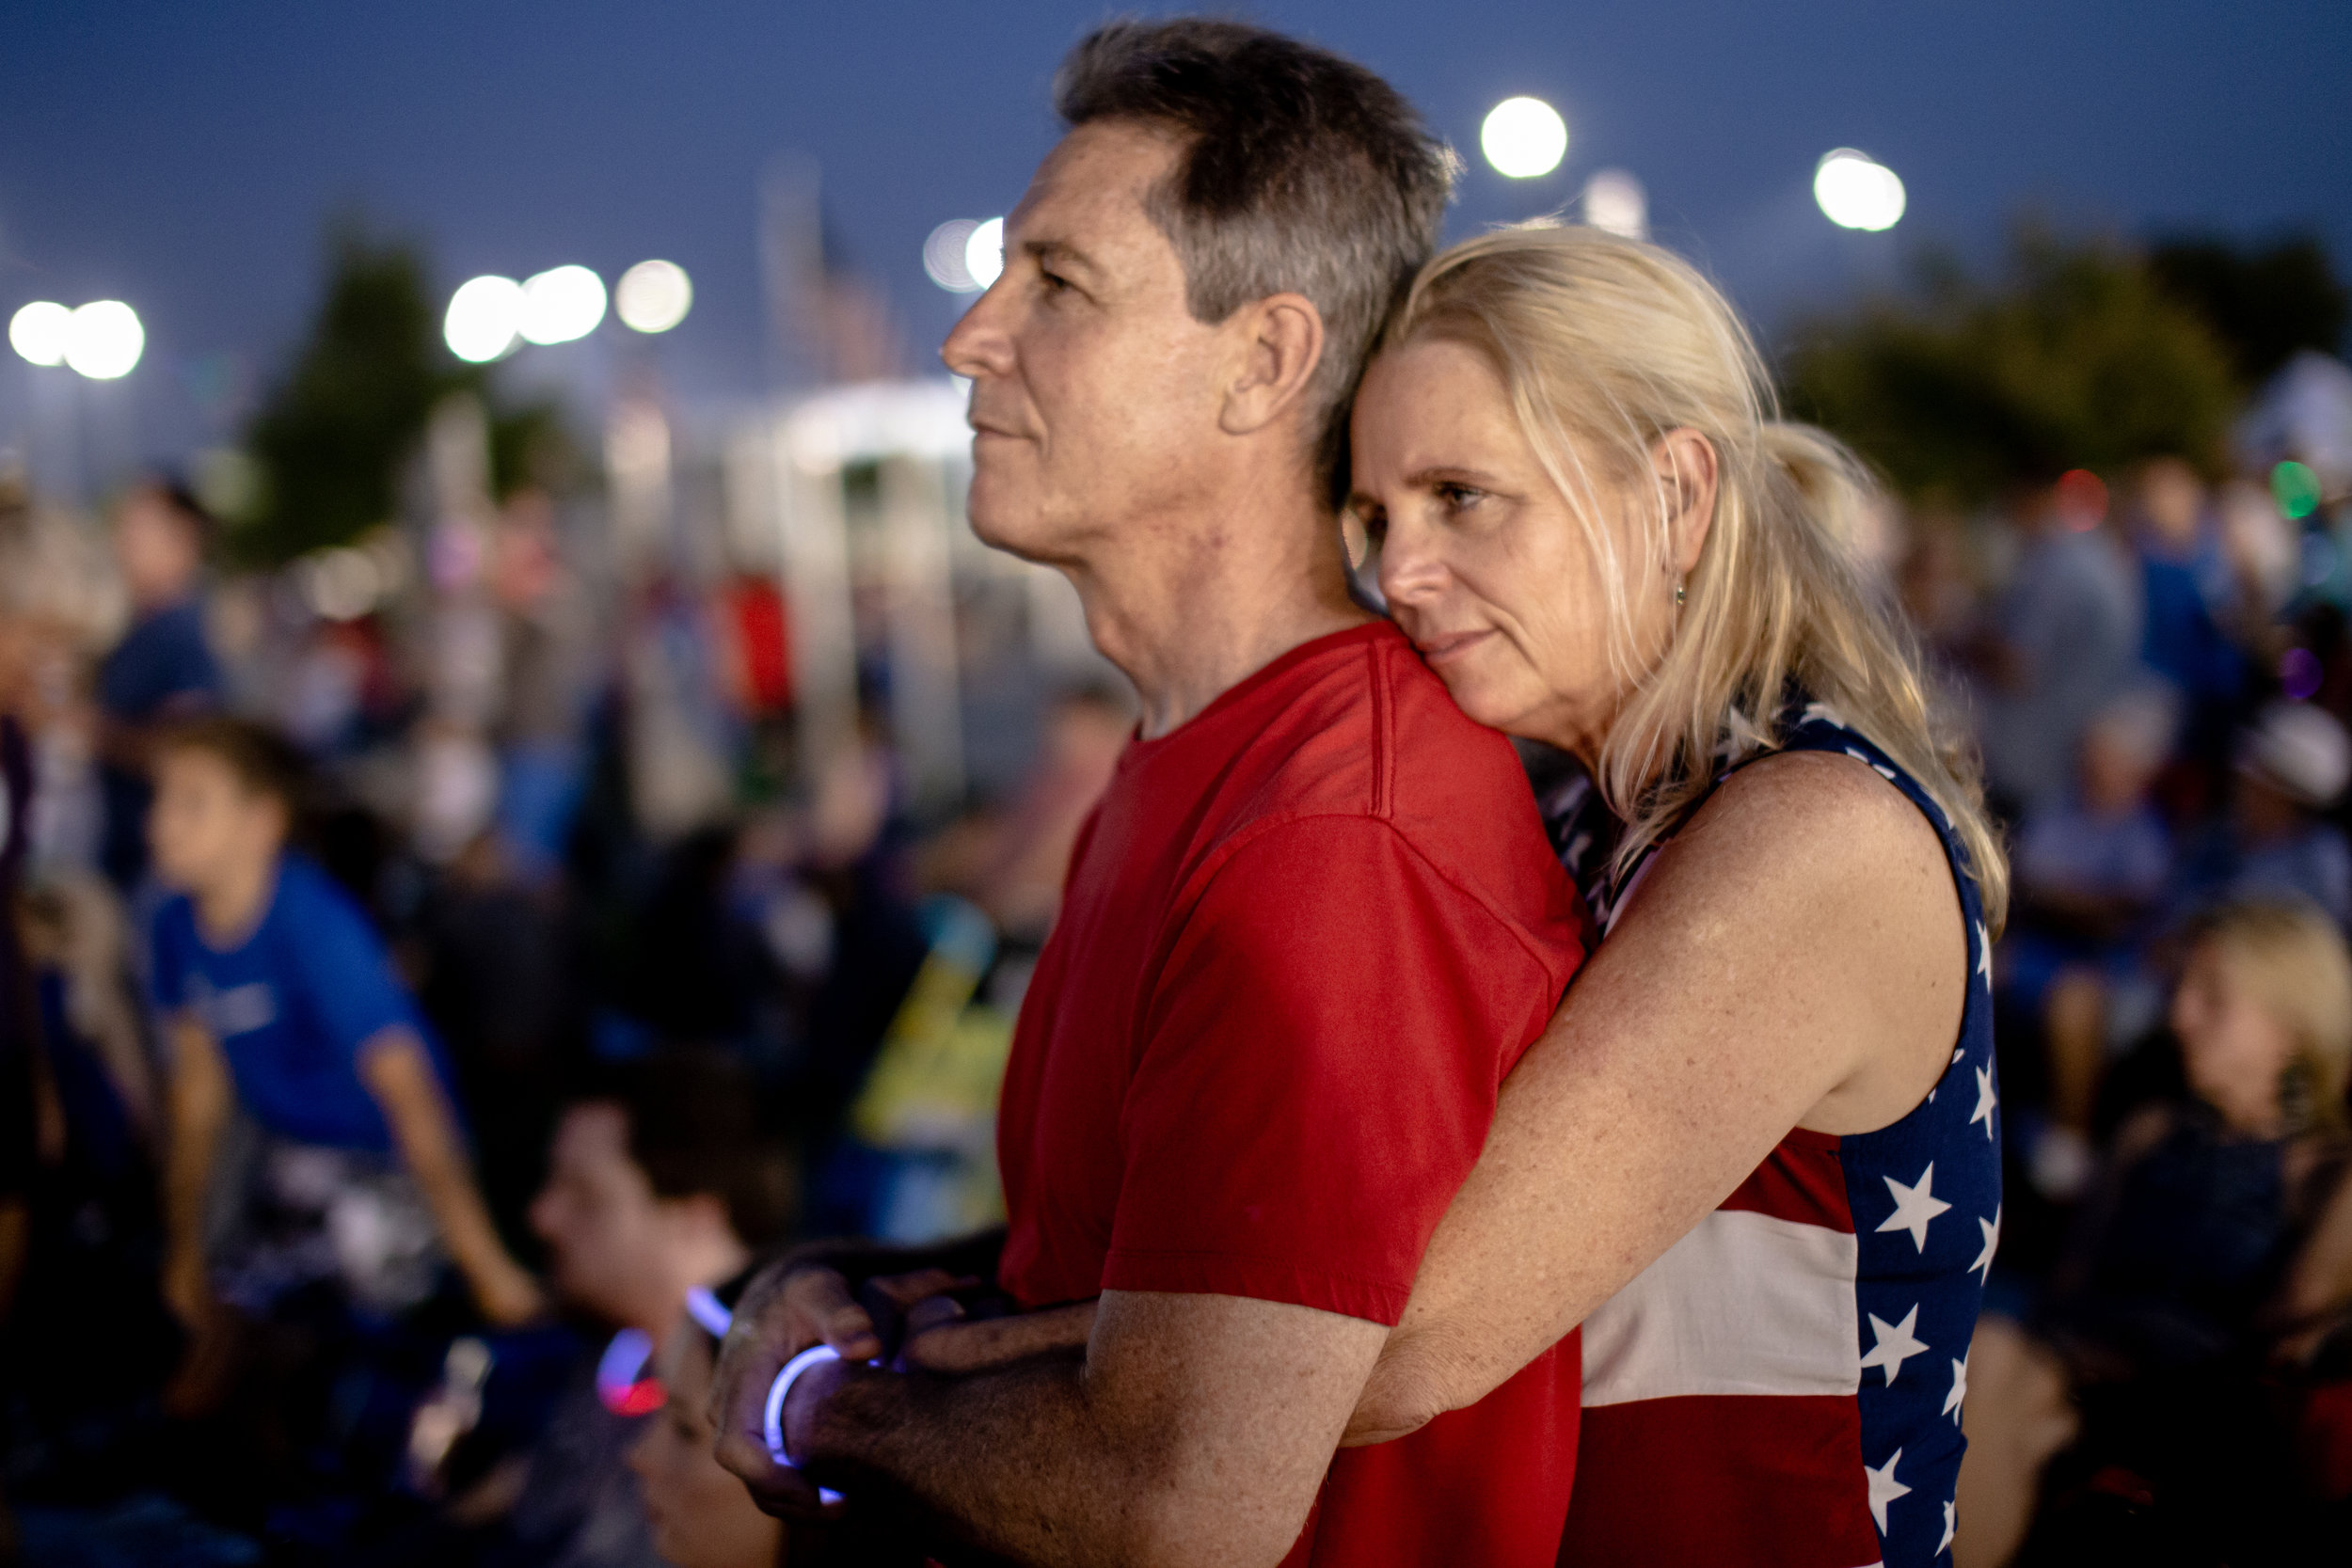 JULY 4, 2019 - A COUPLE WATCHES THE STAGE AT THE ANNUAL INDEPENDENCE DAY FESTIVAL OF FLOWER MOUND, TEXAS; AS BRET MICHAELS SINGS SWEET HOME ALABAMA.